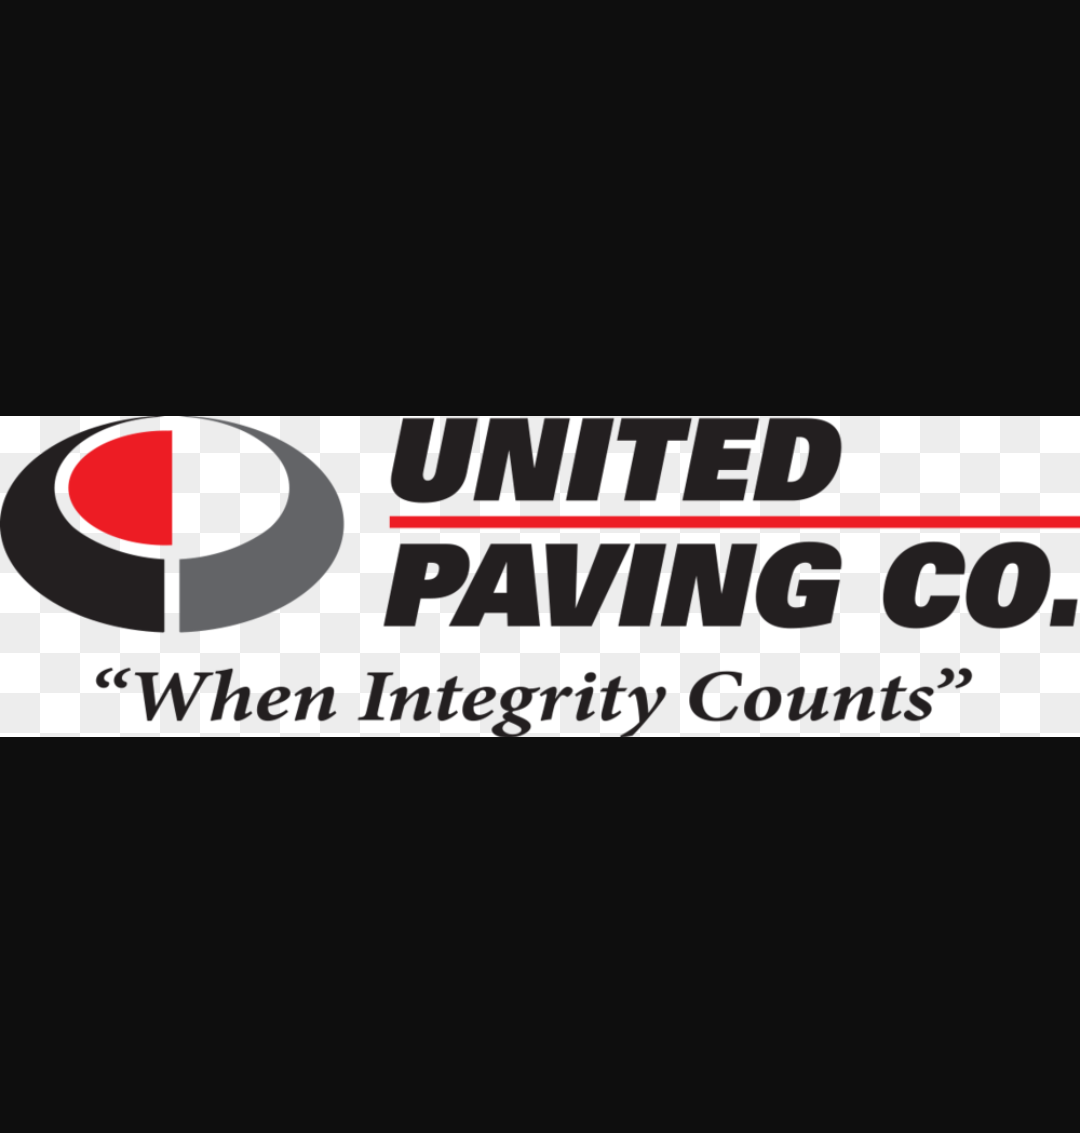 United Paving Co.